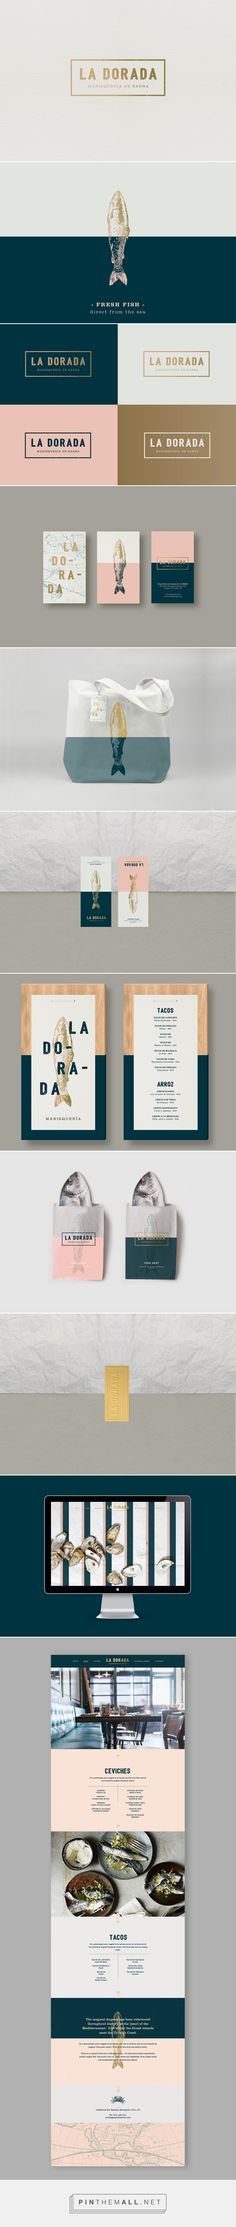 La Dorada - a seafood bistro on Behance - created via https://pinthemall.net